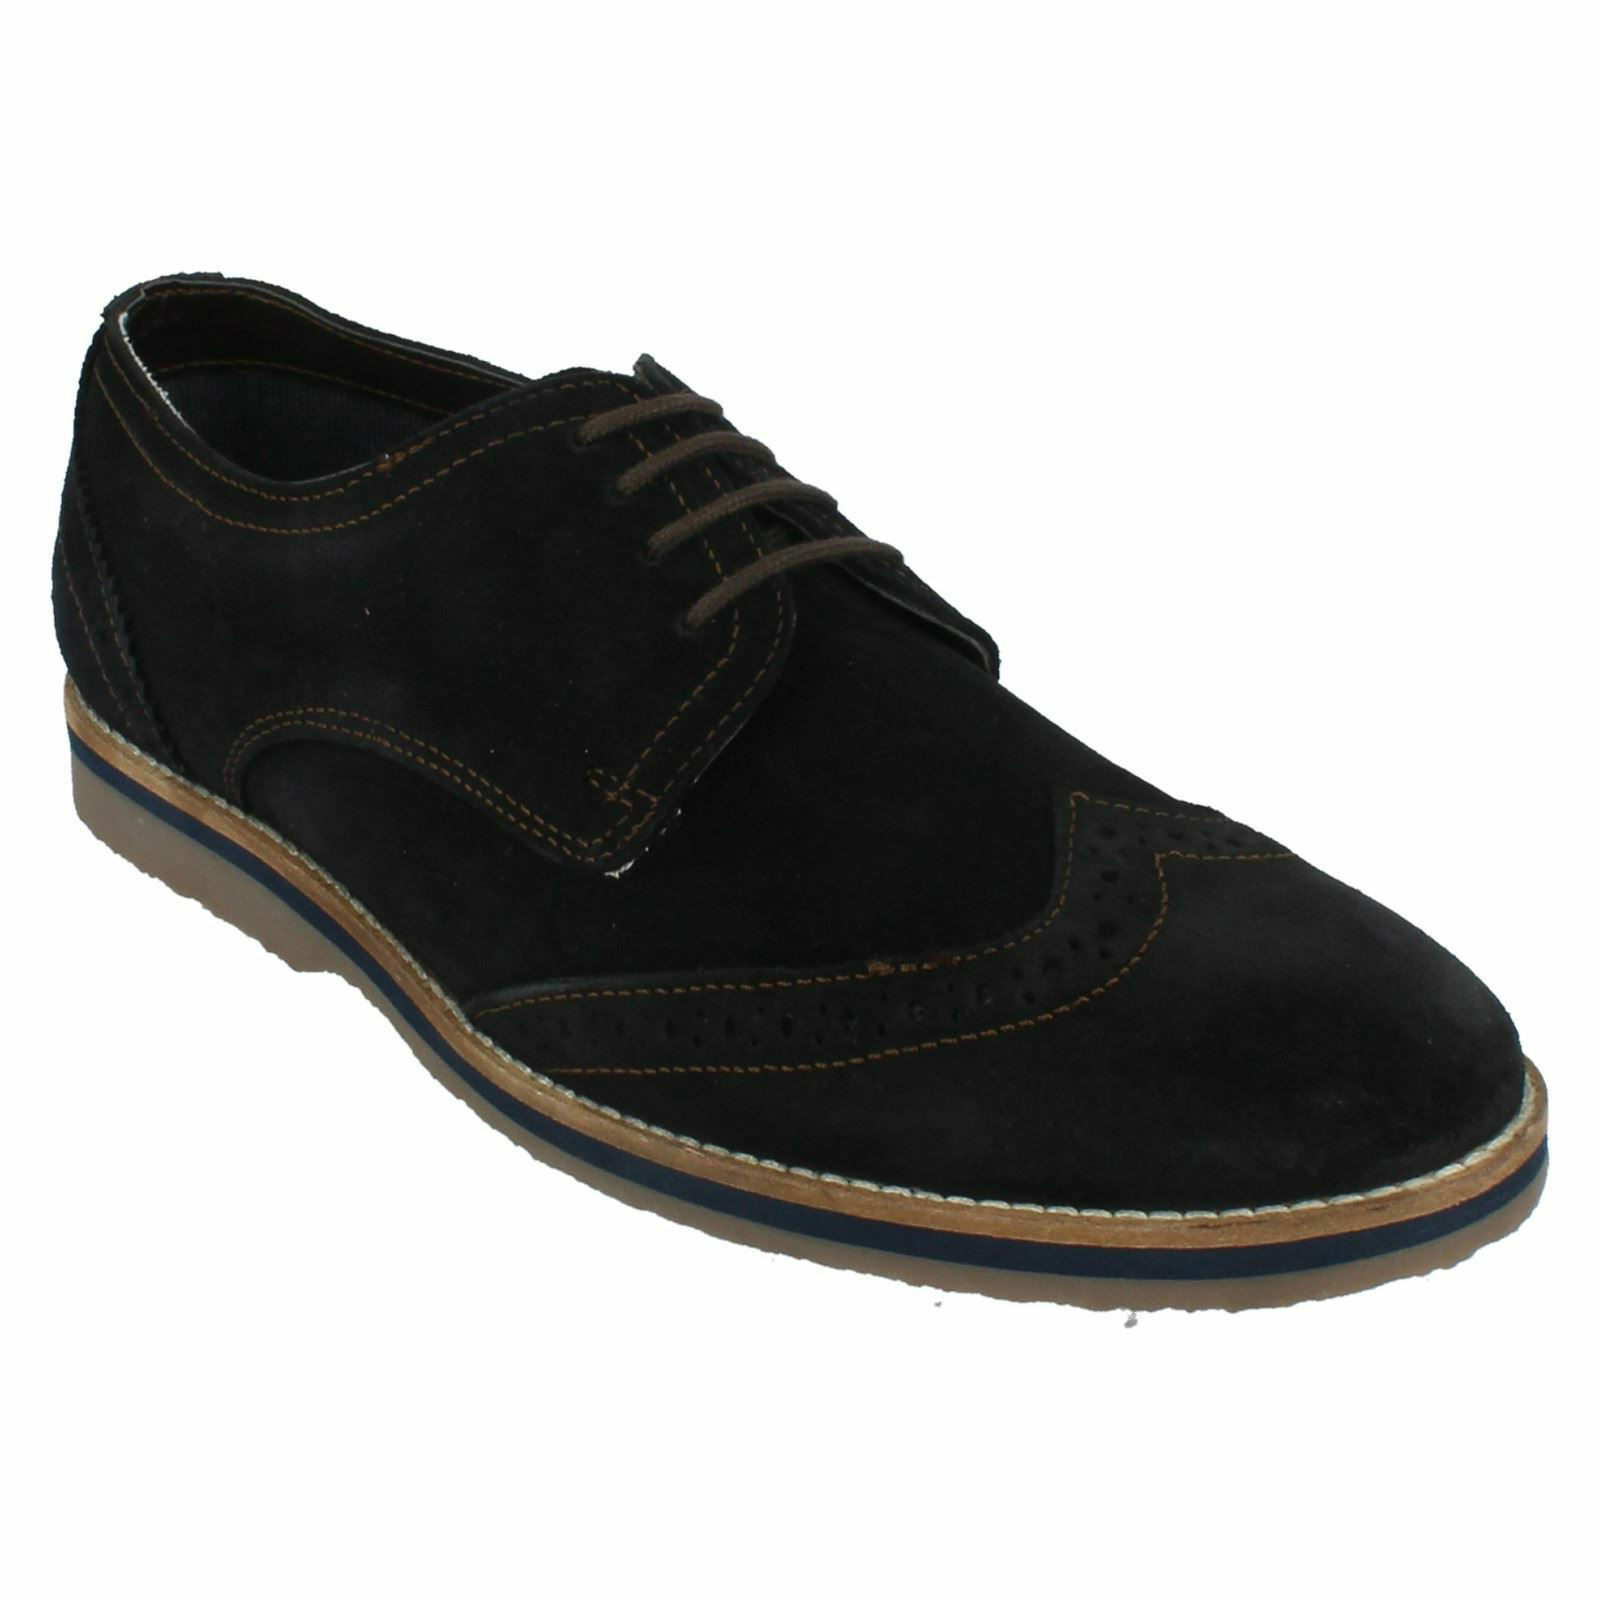 Da Uomo HUSH PUPPIES SEBASTIAN all'inglese Smart Scarpe Stringati In Pelle Scamosciata Scarpe Smart Brogues 5363bc